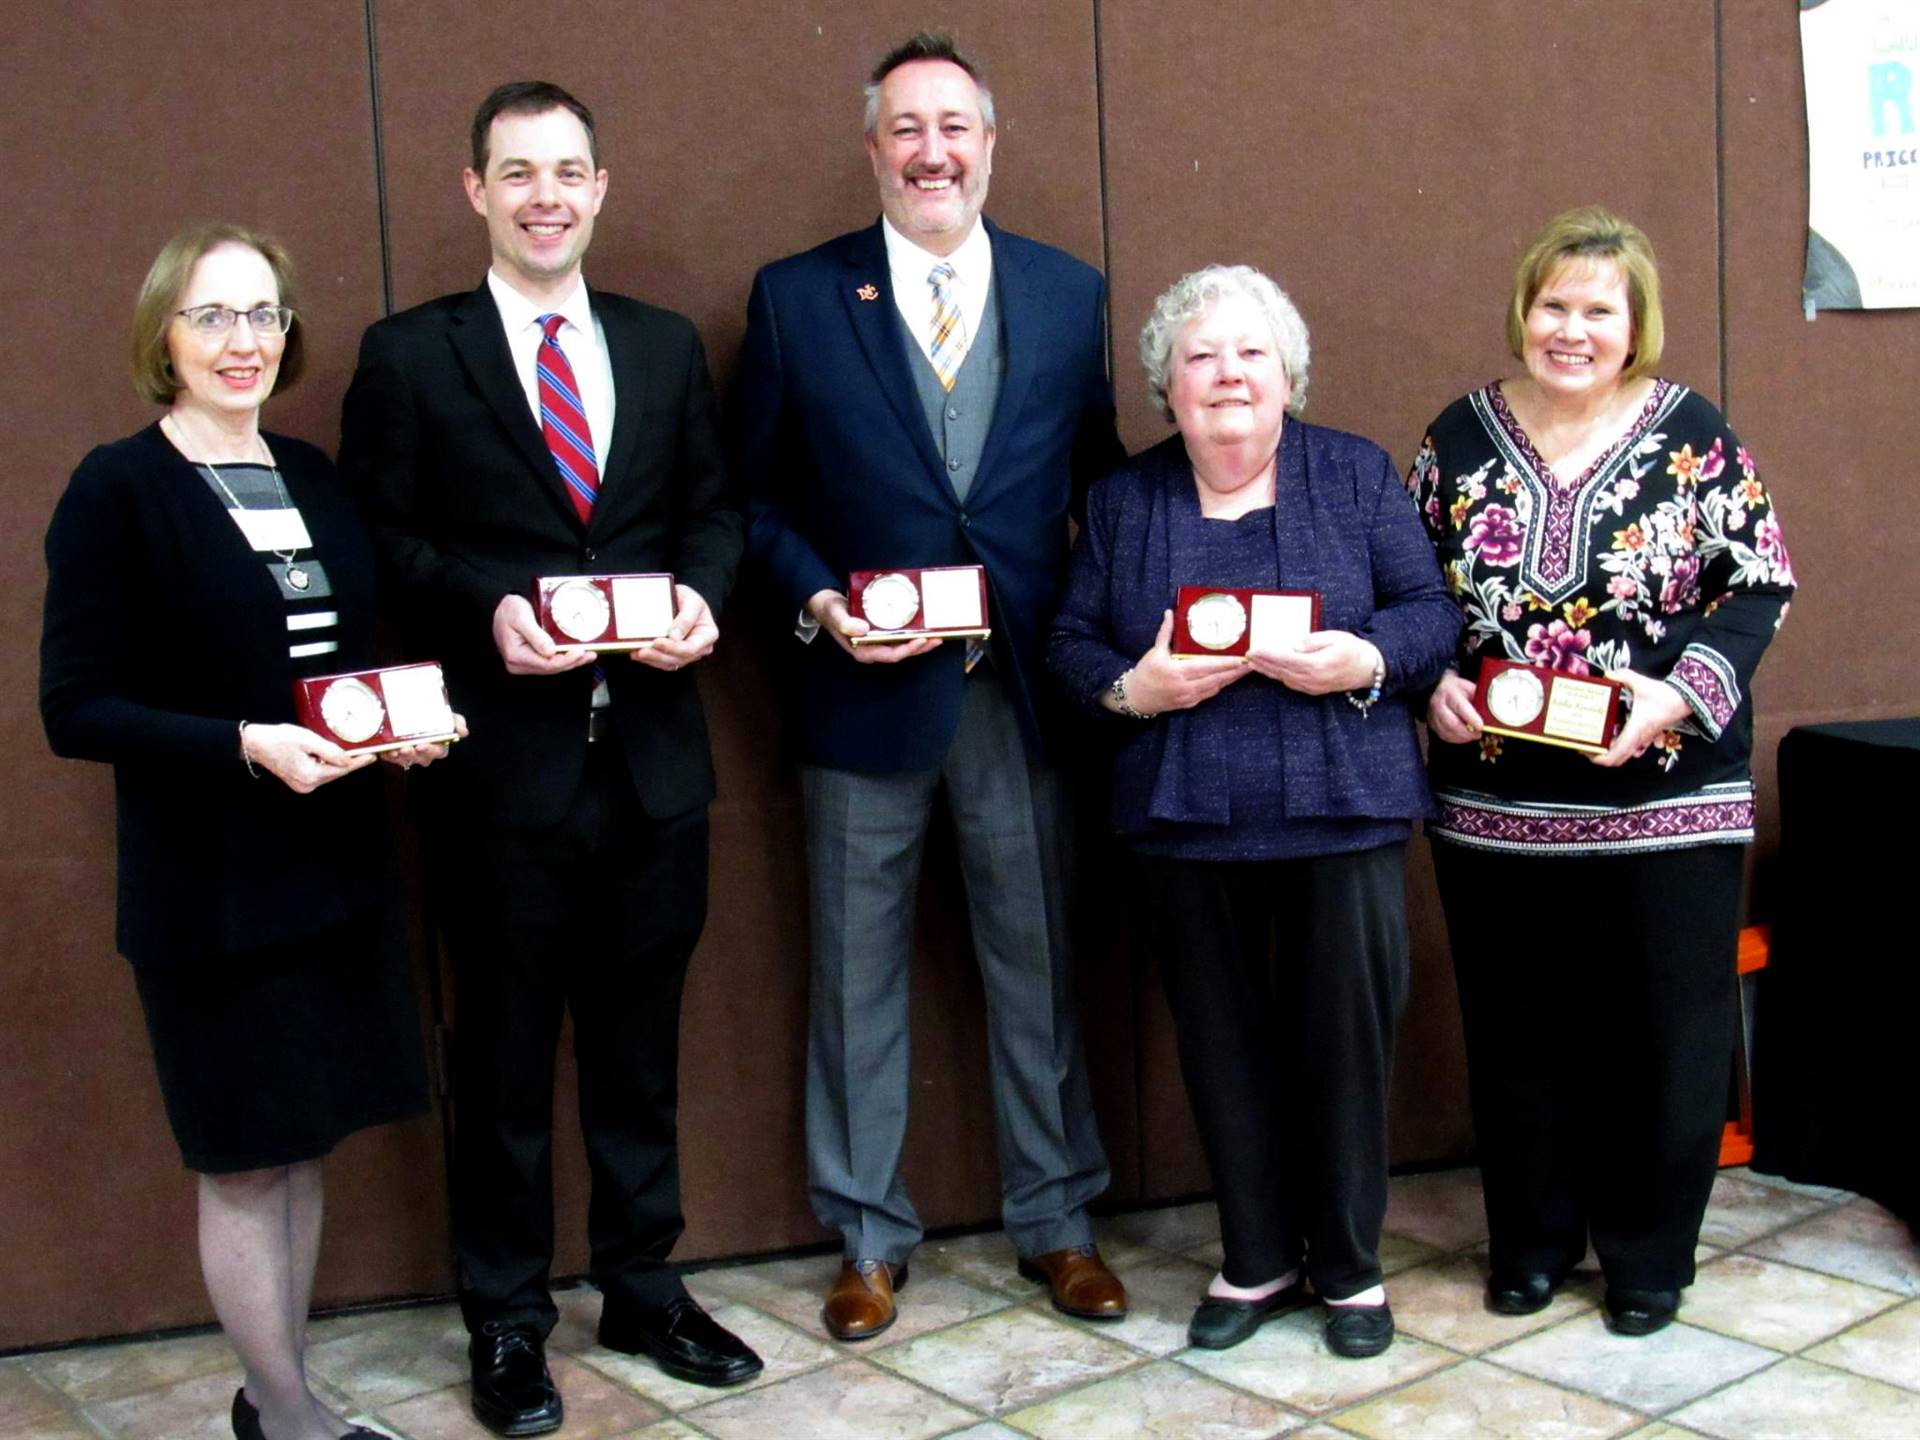 Three women and two men who received the Endowment Awards